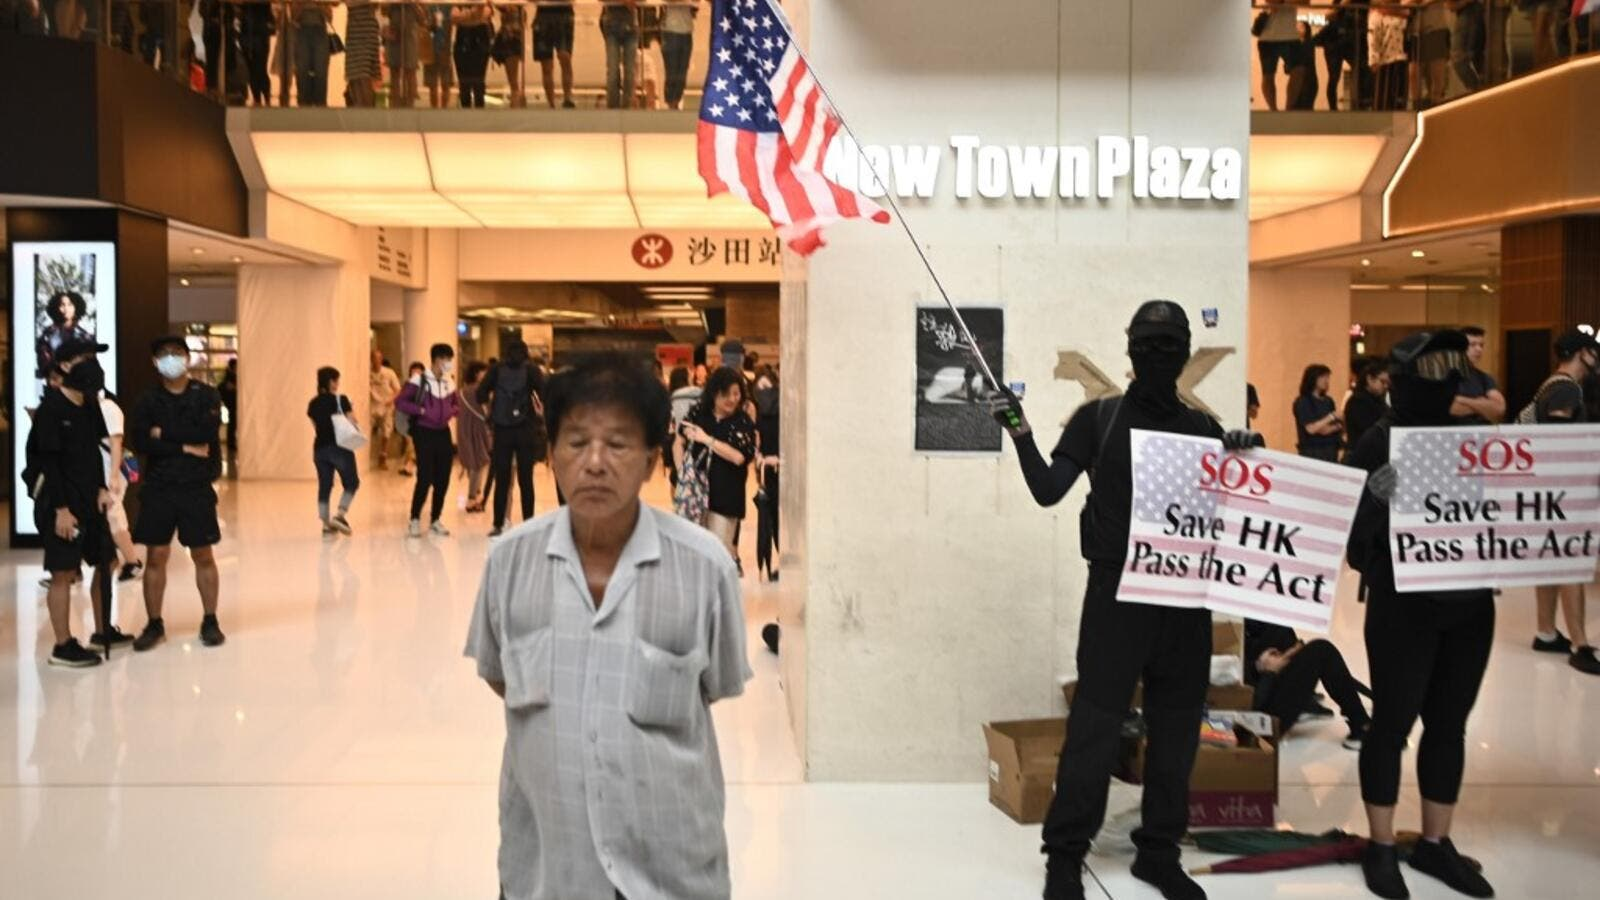 A man (L) walks past a person waving the US flag and holding a sign to rally for the US Congress to pass the Hong Kong Human Rights and Democracy Act, during a flash mob rally inside a shopping mall in the Sha Tin district in Hong Kong on October 13, 2019. (AFP/ File Photo)